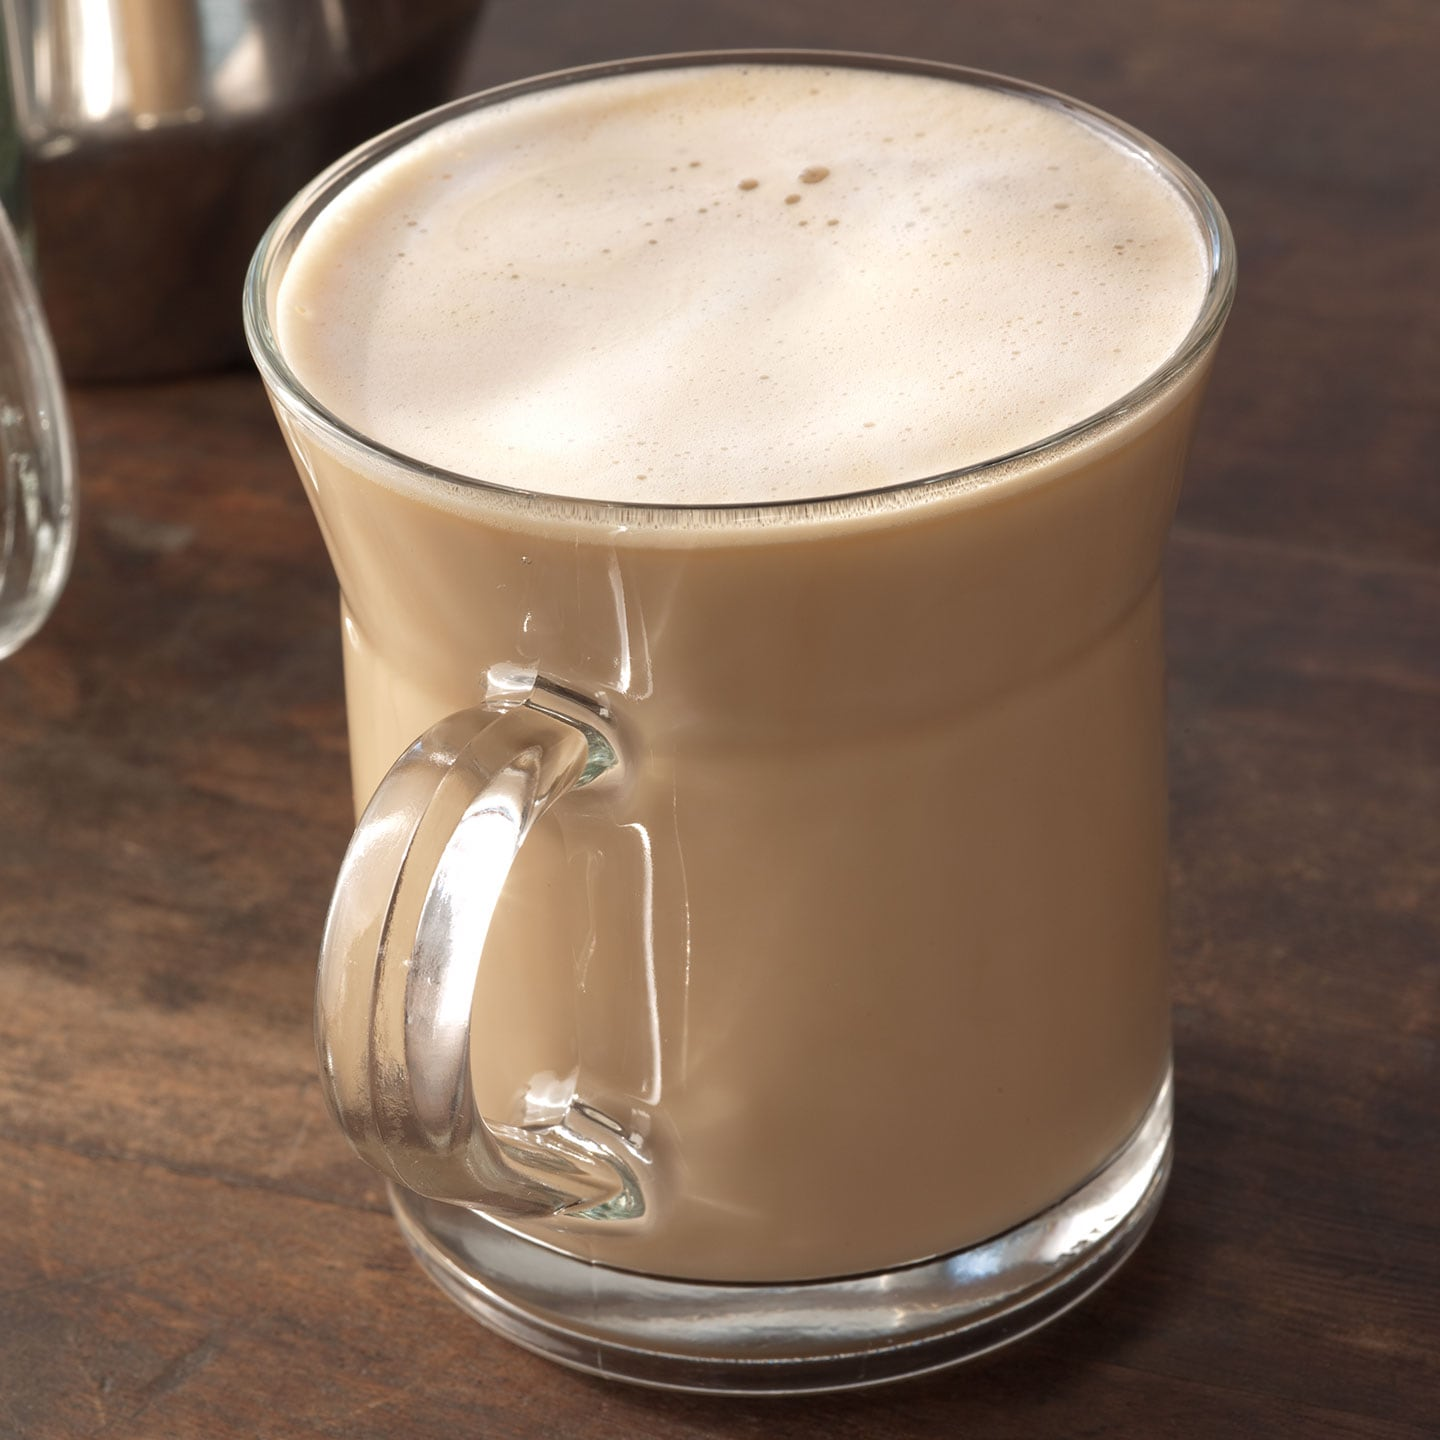 Formidable Brewed Coffee Starbucks Coffee Company Holiday Spice Flat Reddit Holiday Spice Flat 2018 nice food Holiday Spice Flat White